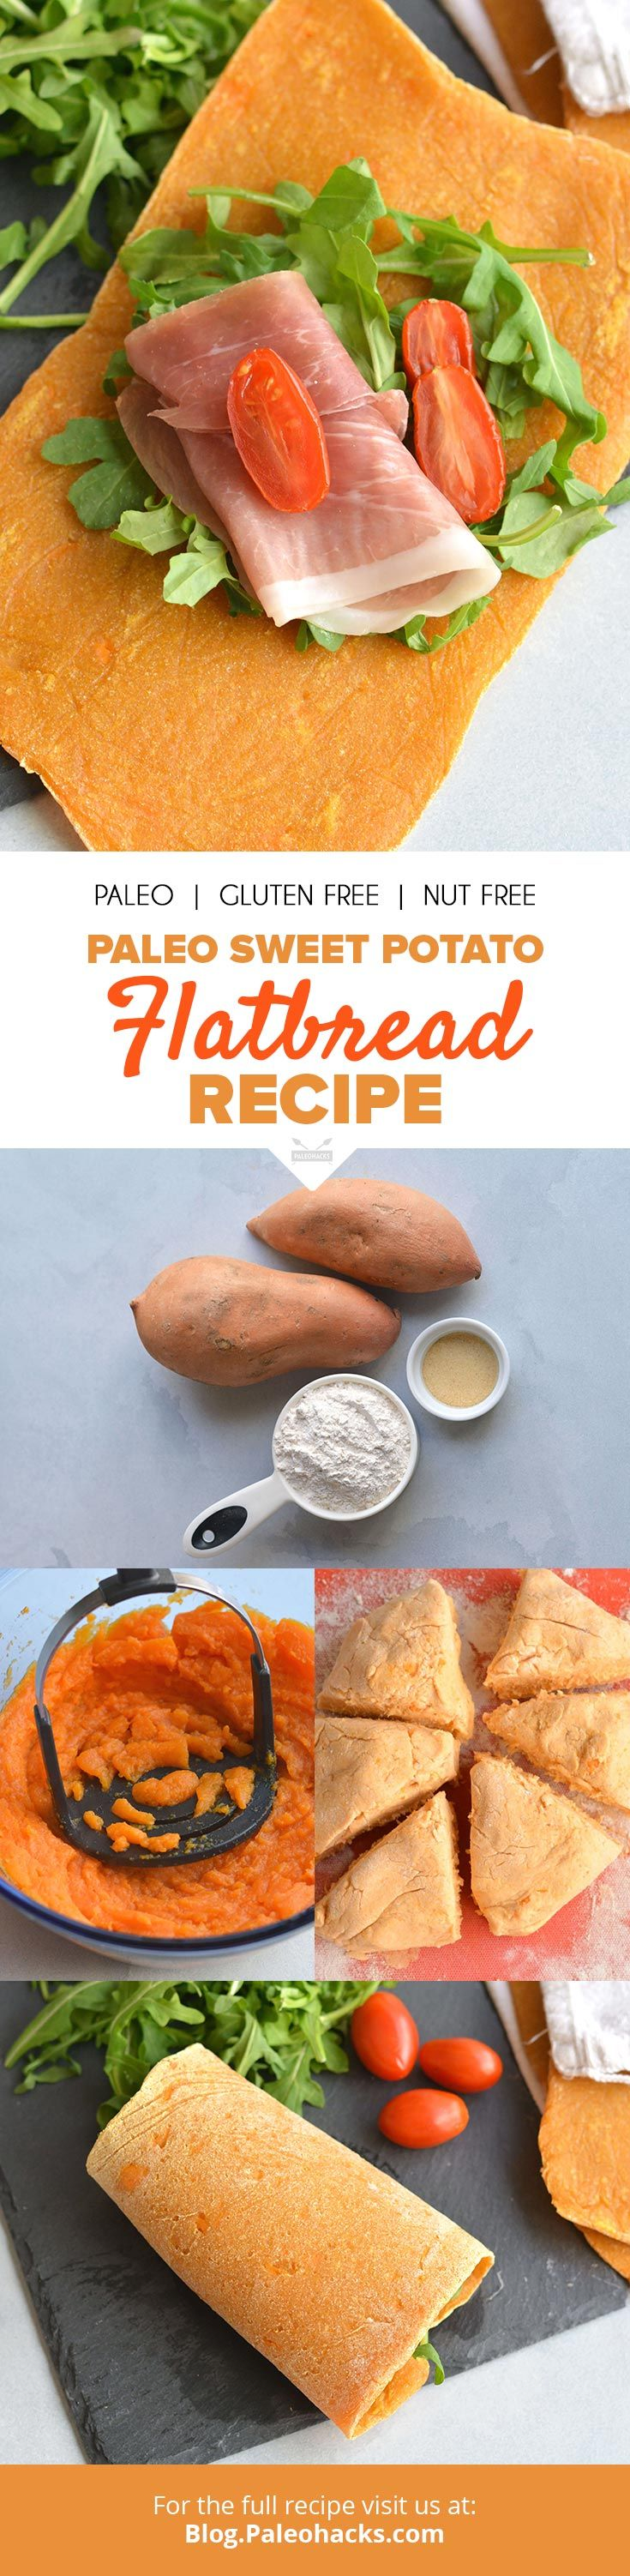 This 4-ingredient sweet potato flatbread is nut-free, dairy-free, and gluten-free for an allergy-friendly recipe. Roll it up,  dip it into hummus or pile it high with your favorite pizza toppings! Get the full recipe here: http://paleo.co/SWPflatbread